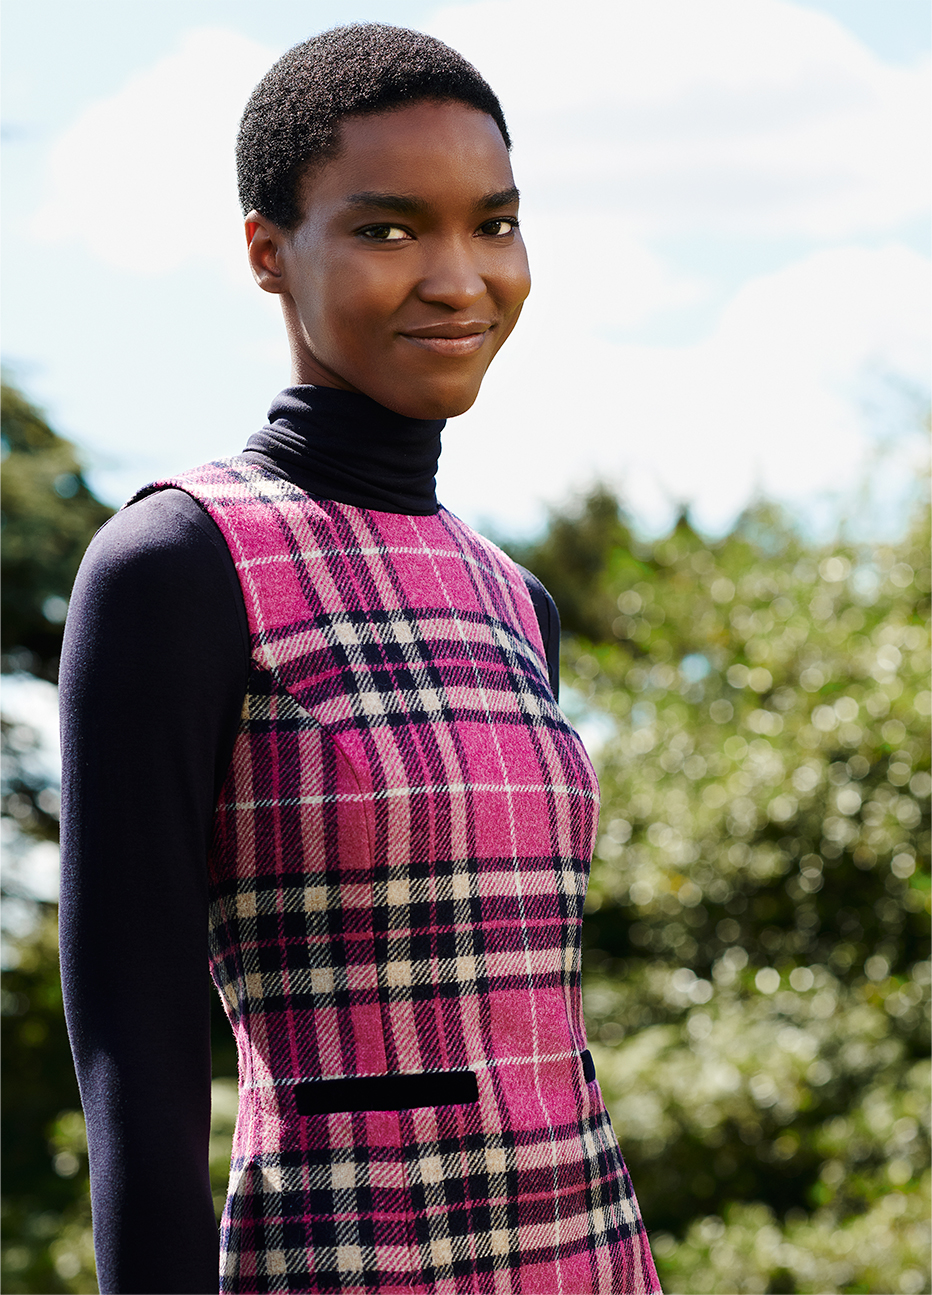 Close-up image of model wearing a checked tunic dress over a roll neck top.